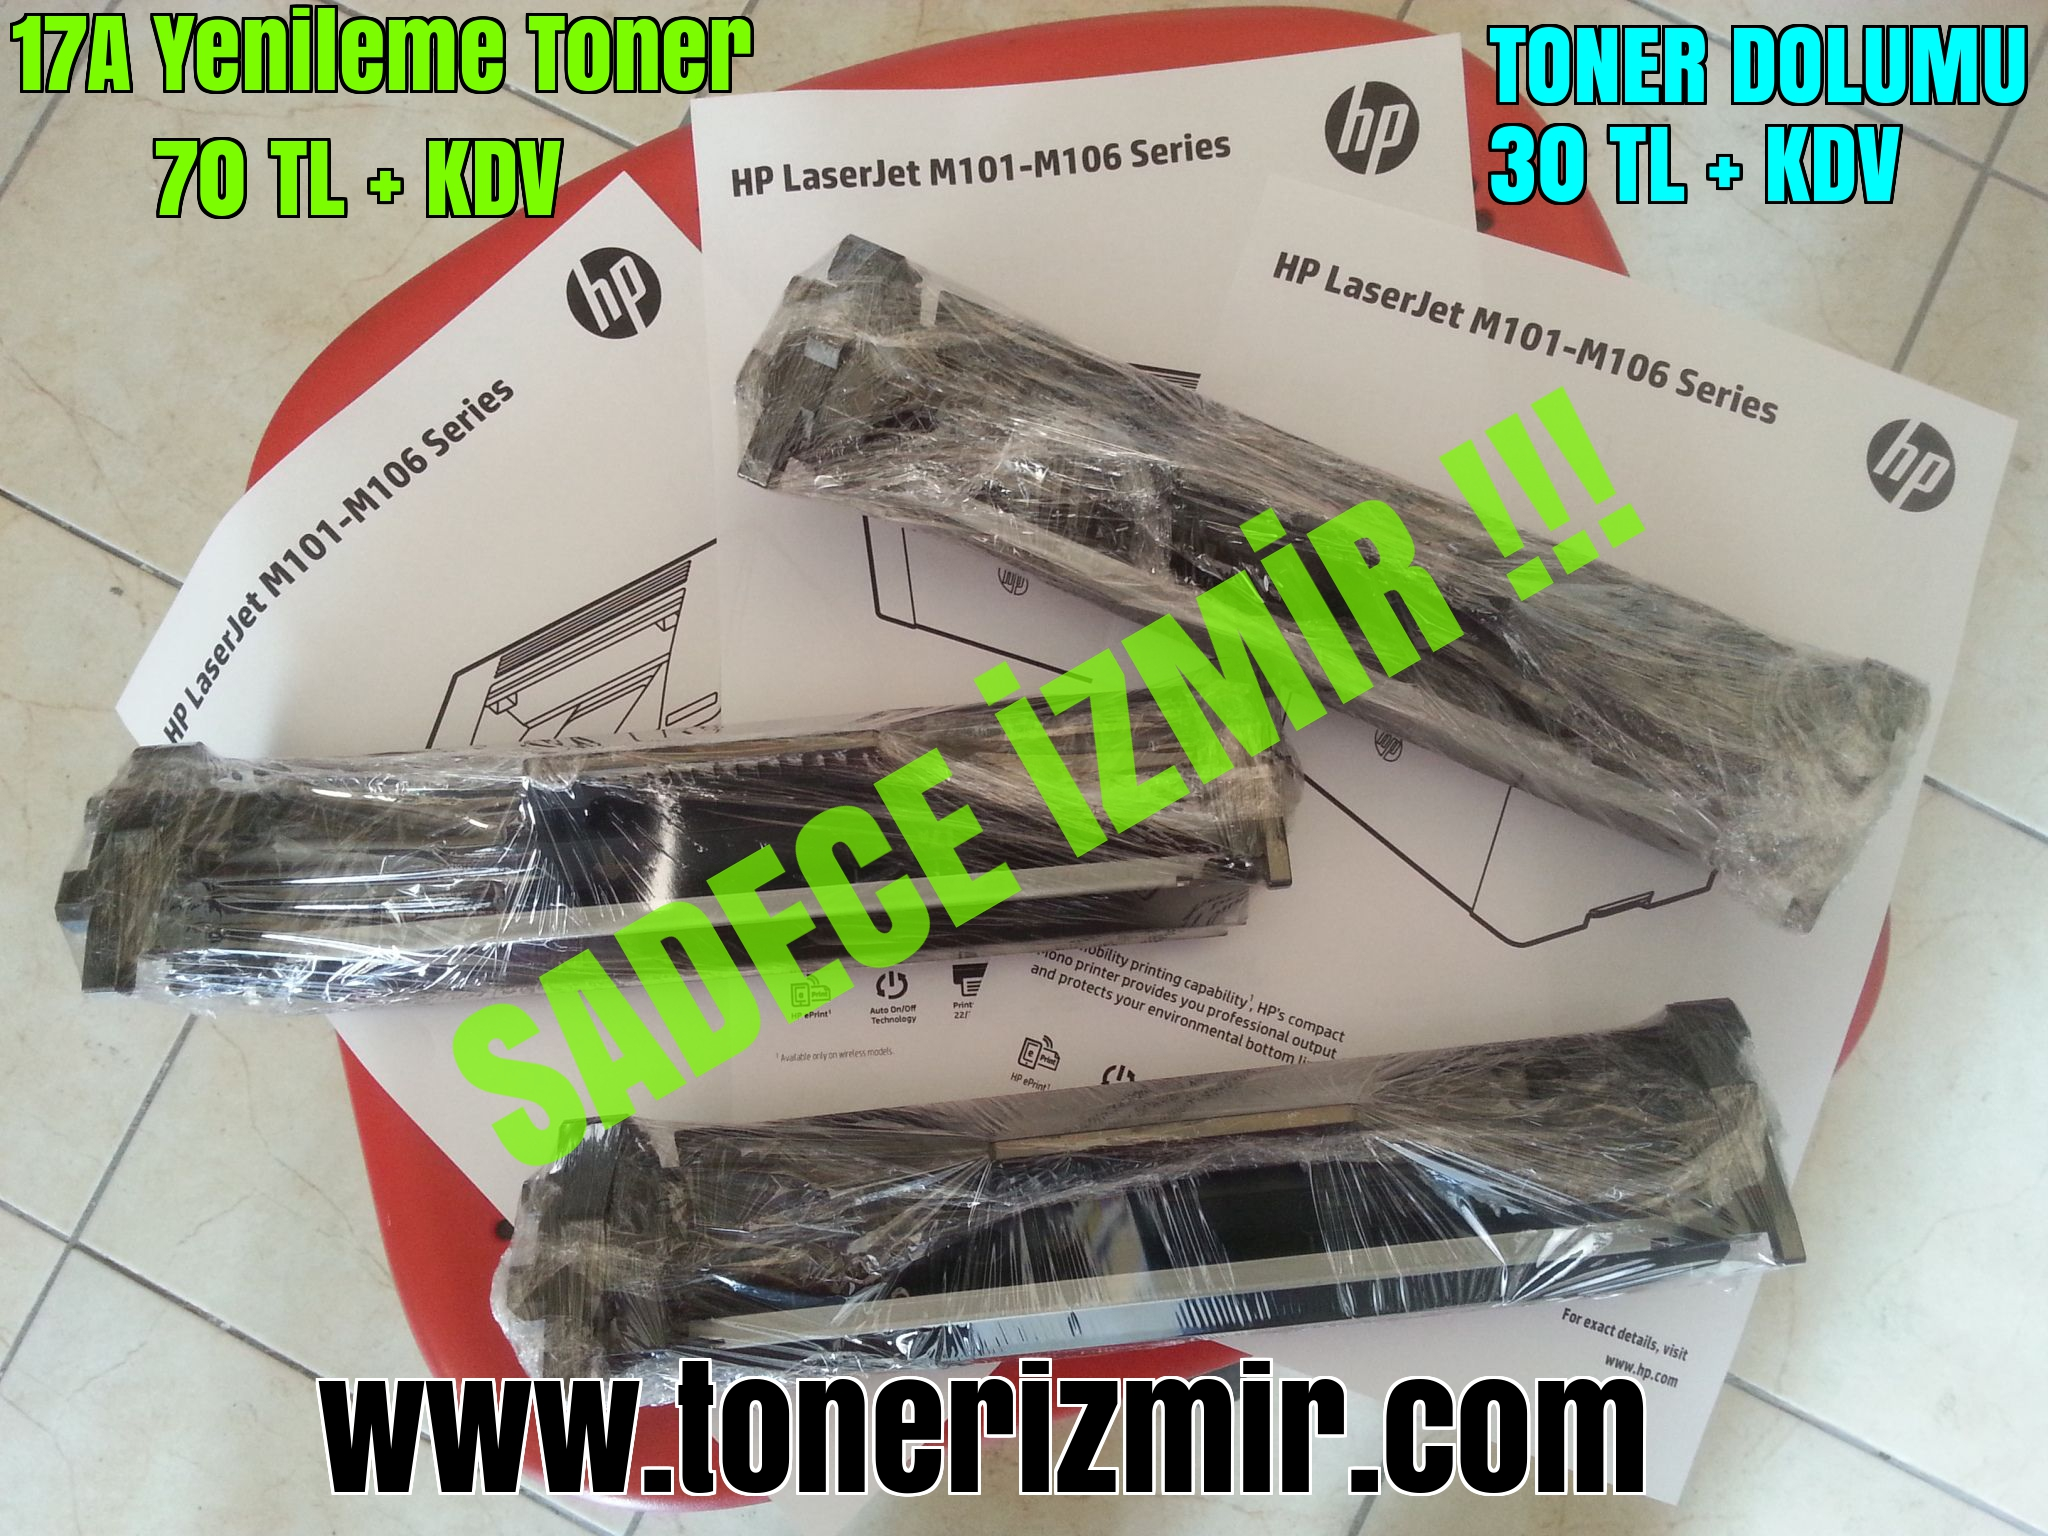 Toner refill and compatible toner in Turkey